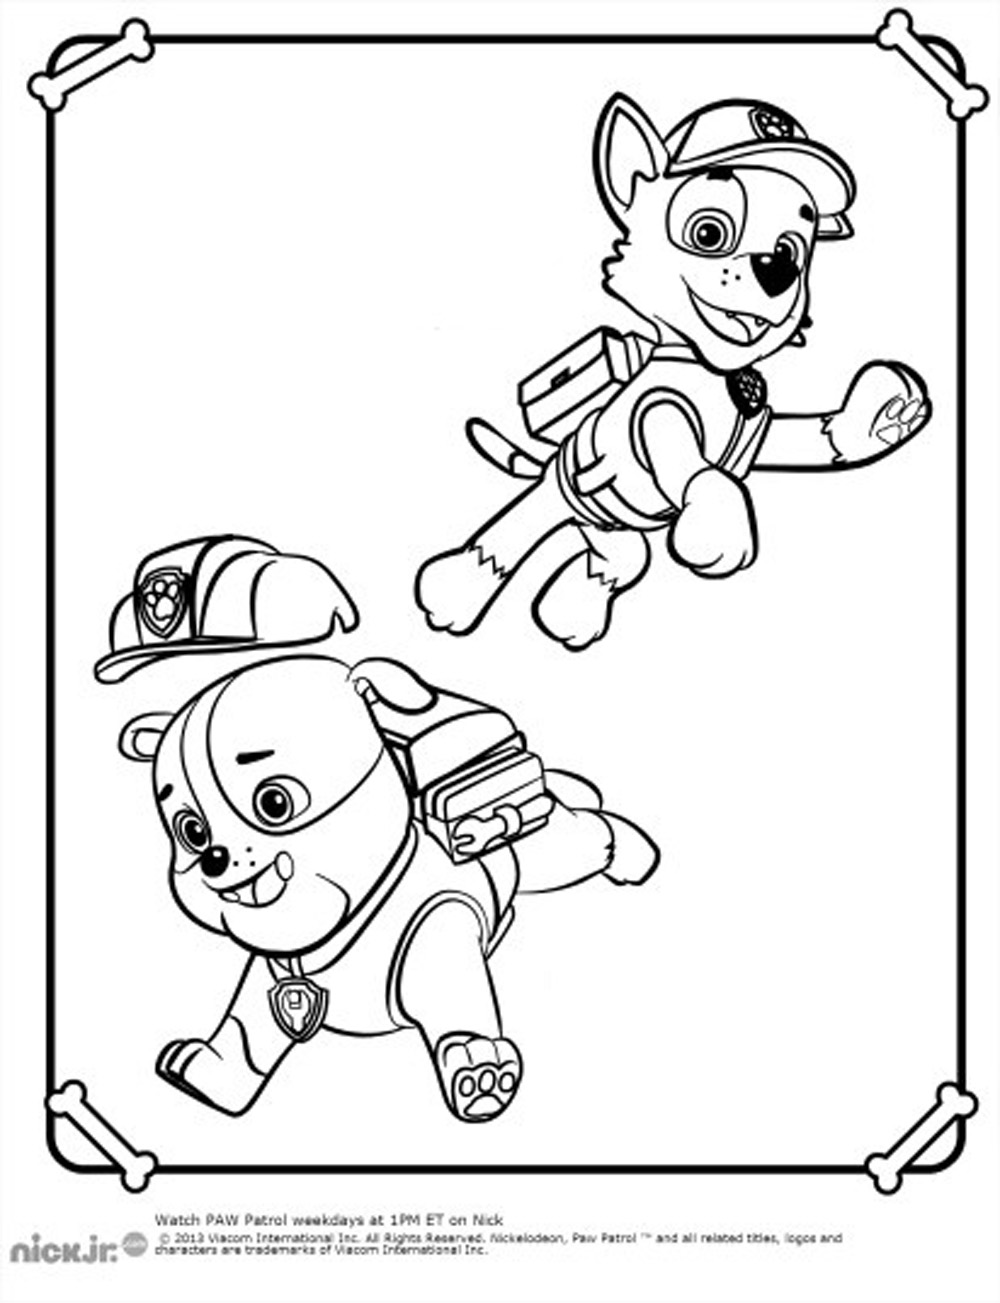 Paw Patrol coloring page with few details for kids